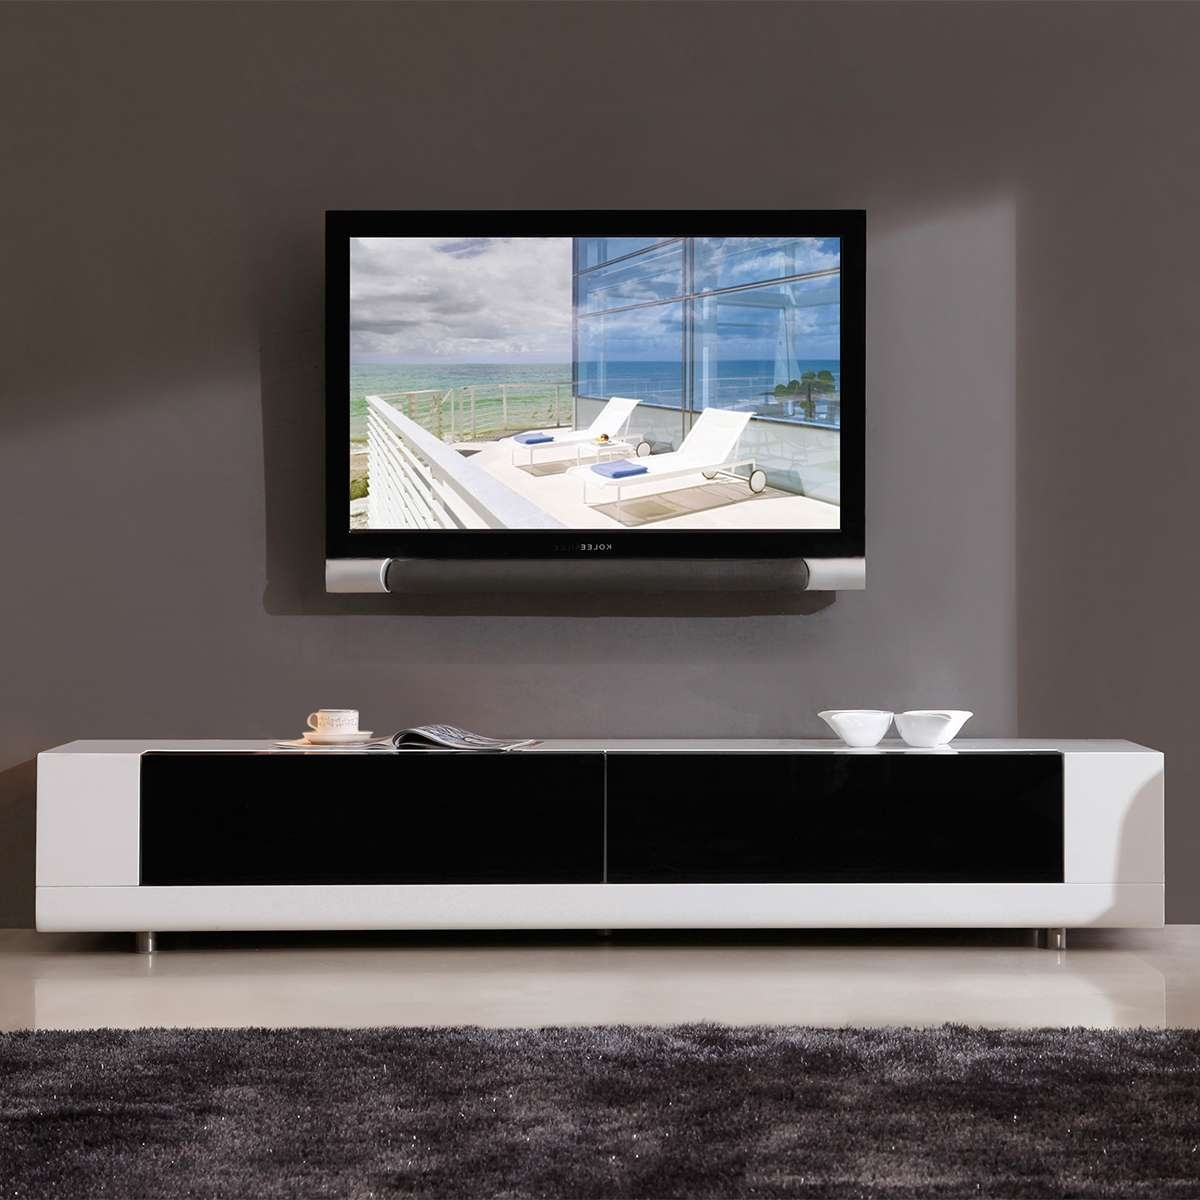 15 Inspirations Of Contemporary Tv Stands # Contemporary Tv Stands